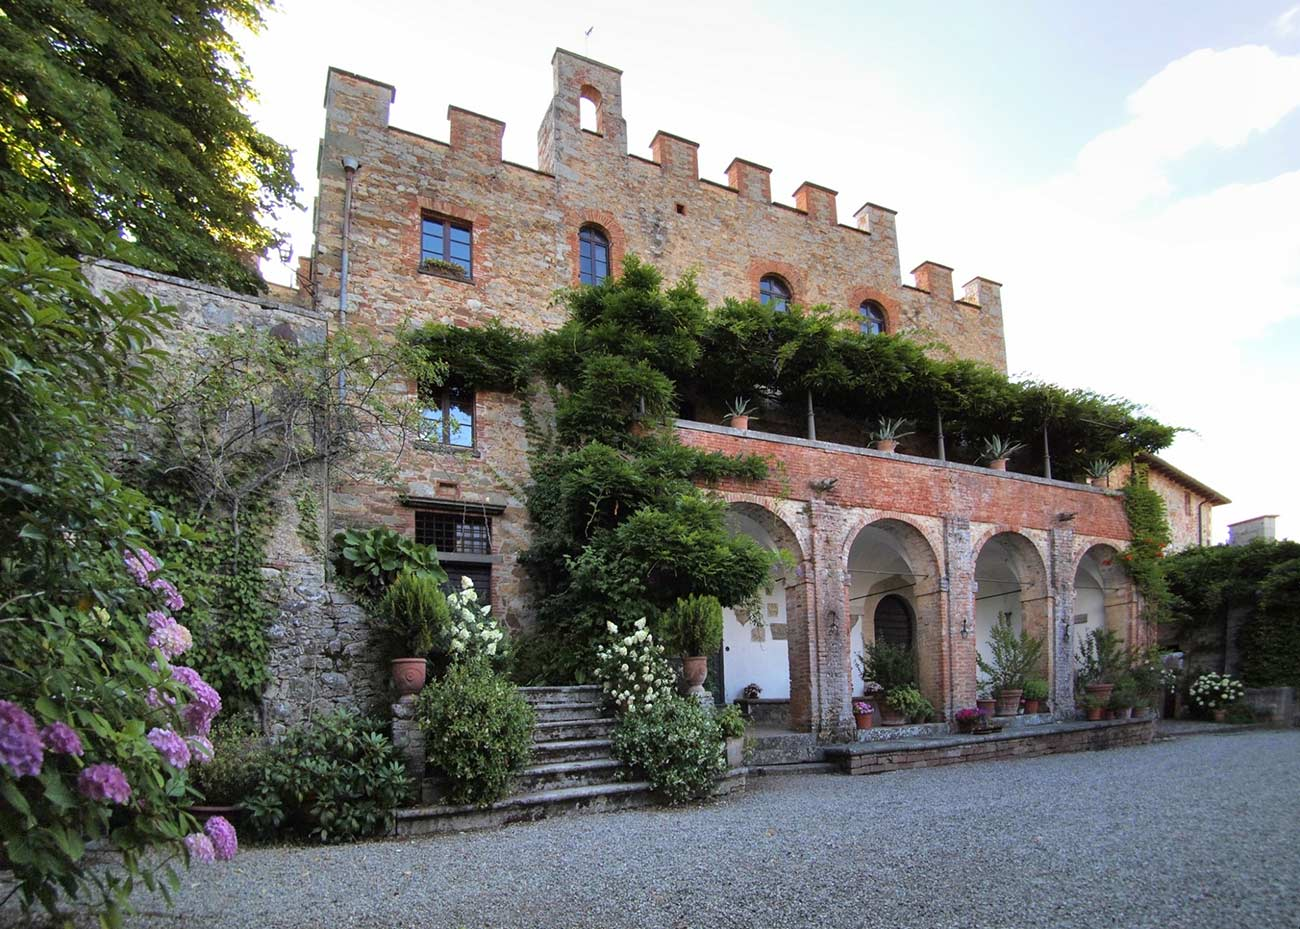 A real large Tuscan villa inside the Castle. Italy Villas.